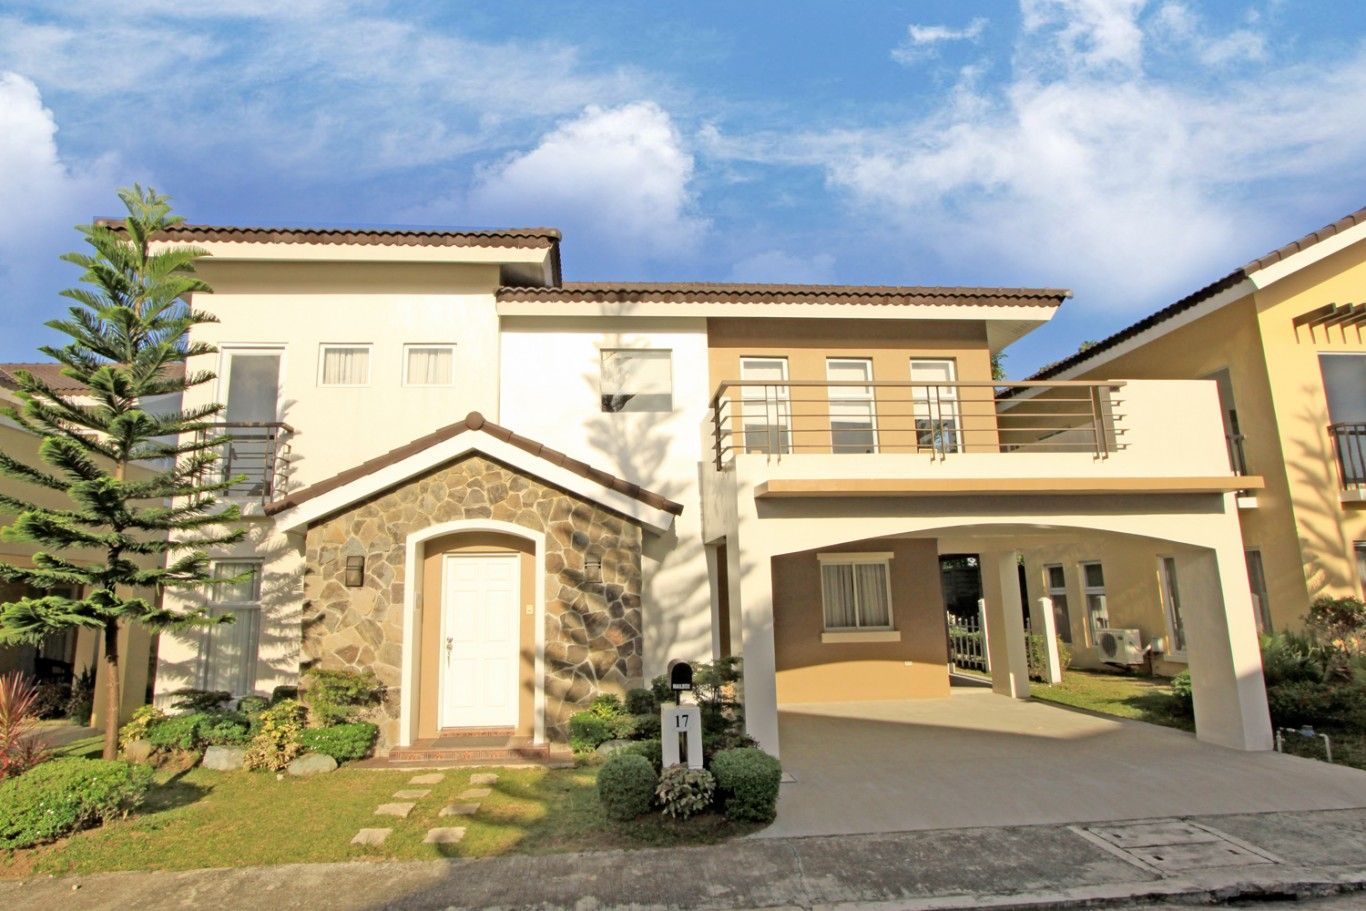 9 best list of top dasmarinas cavite philippines properties for 9 best list of top dasmarinas cavite philippines properties for sale images on pinterest condominium real estate business and house malvernweather Images